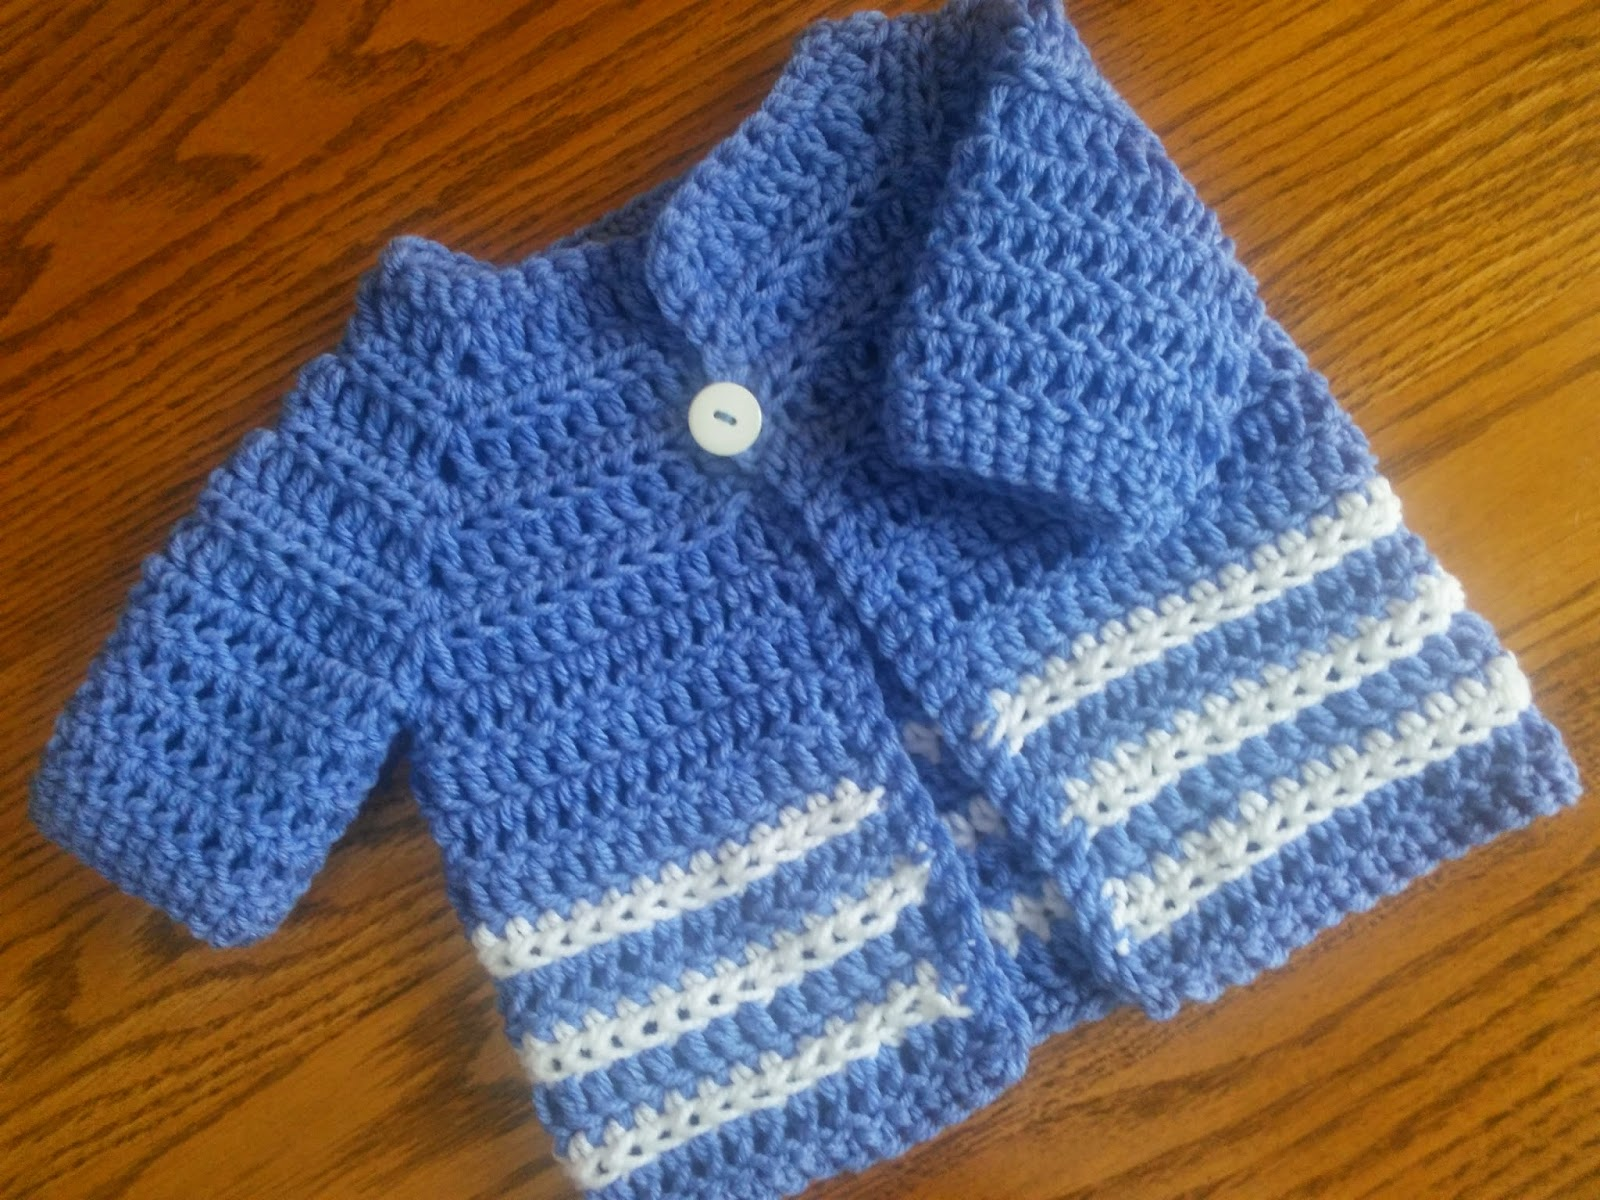 Free Crochet Patterns Pullover Sweater : Craft Brag: Baby Boy Crochet Sweater - Pattern